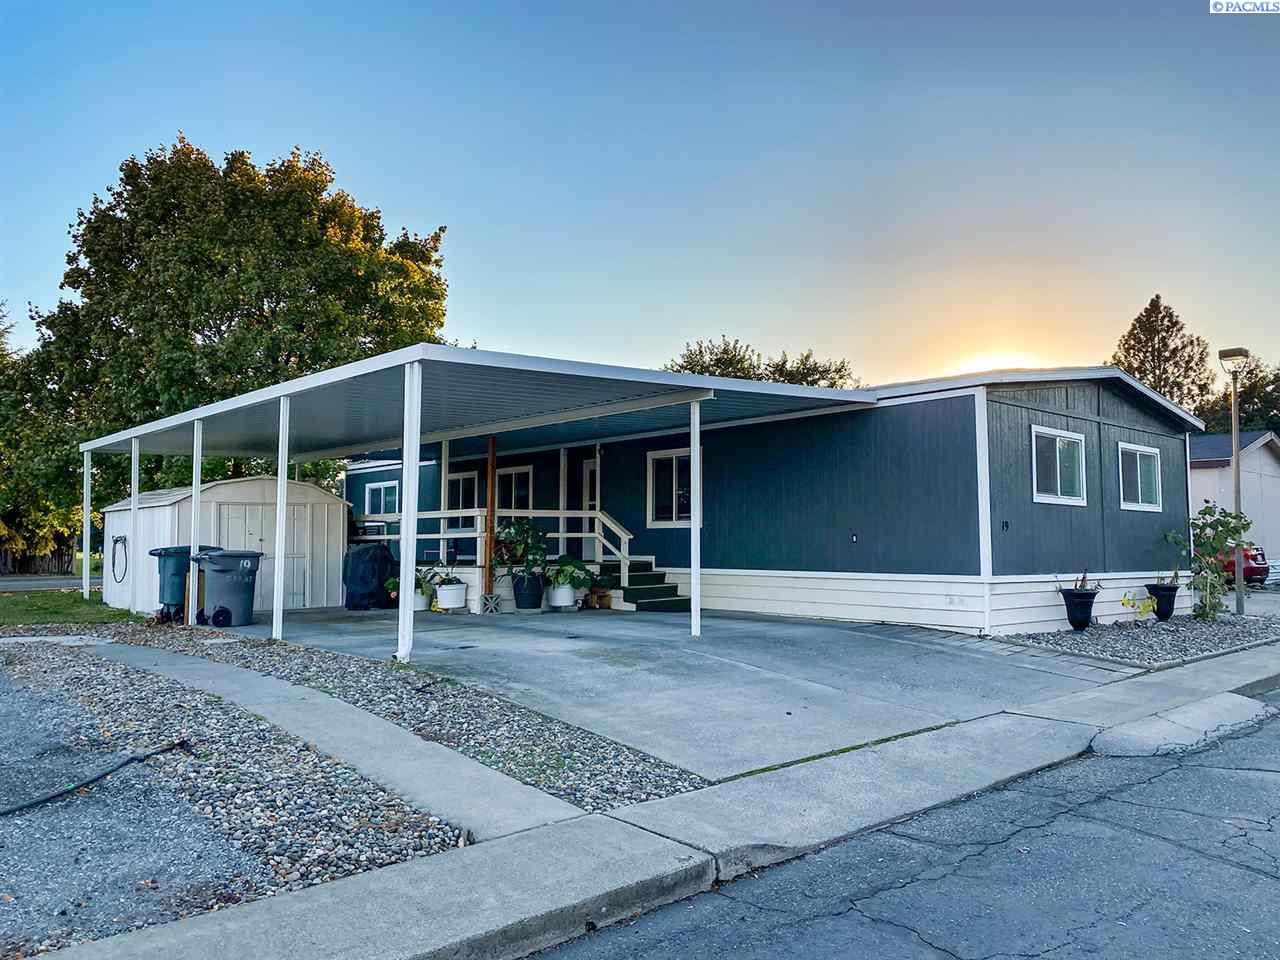 Manufactured Home for Sale at 19 Galaxy Lane Richland, Washington 99354 United States